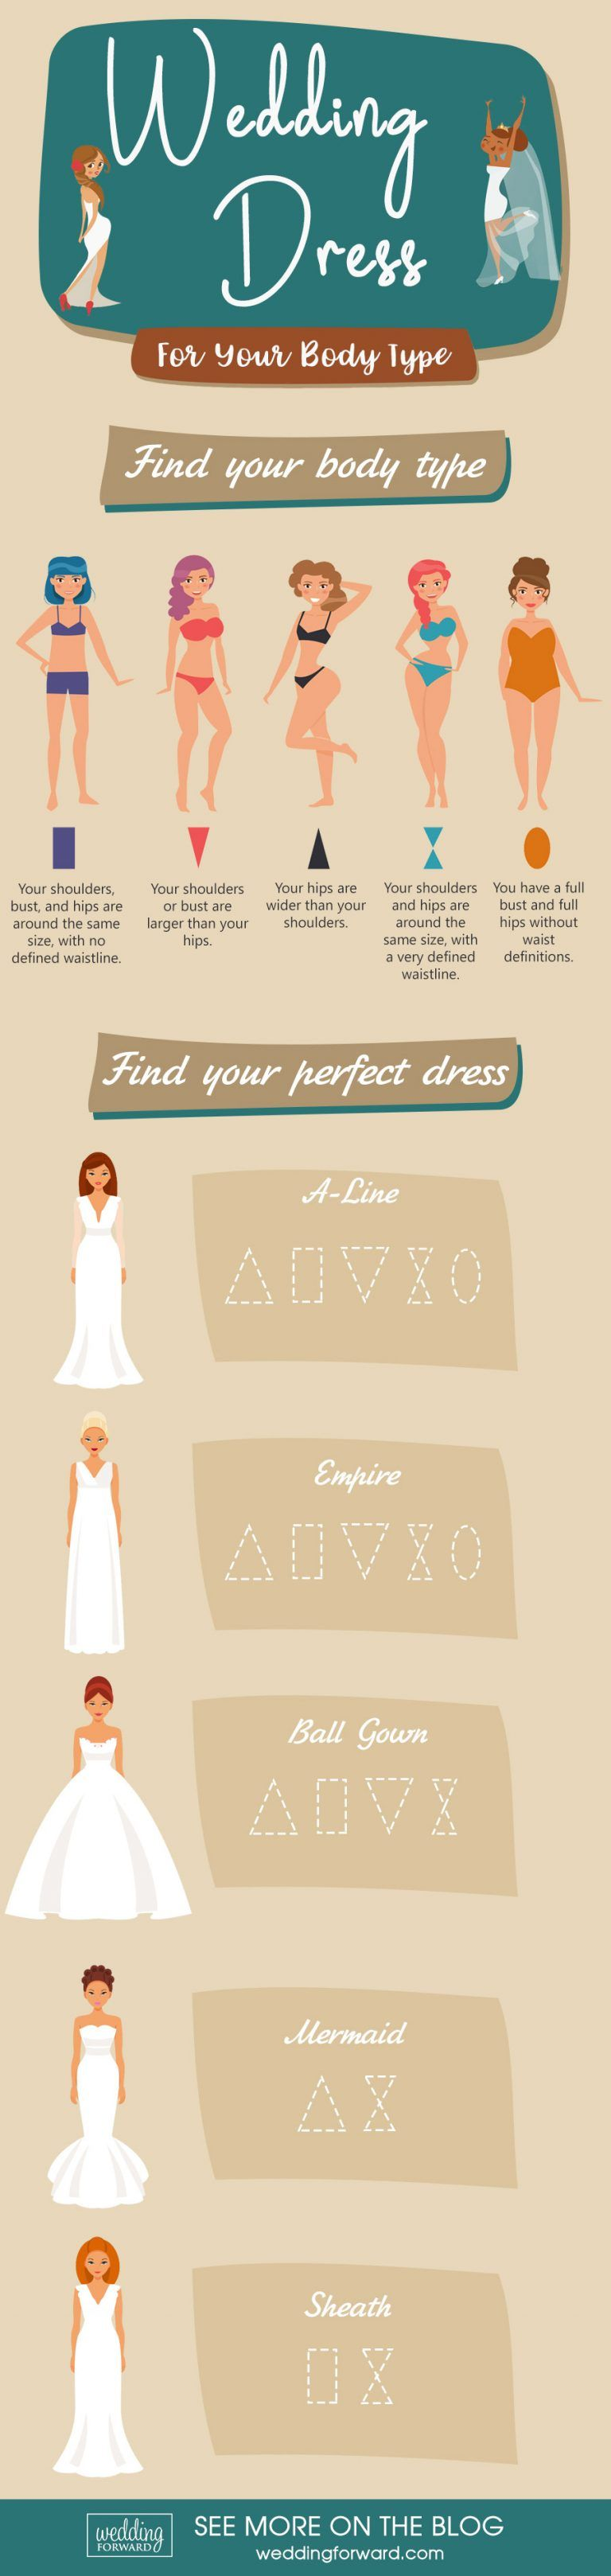 Wedding dress for your body  Choosing The Right Wedding Dress For Your Body Type  Outfit